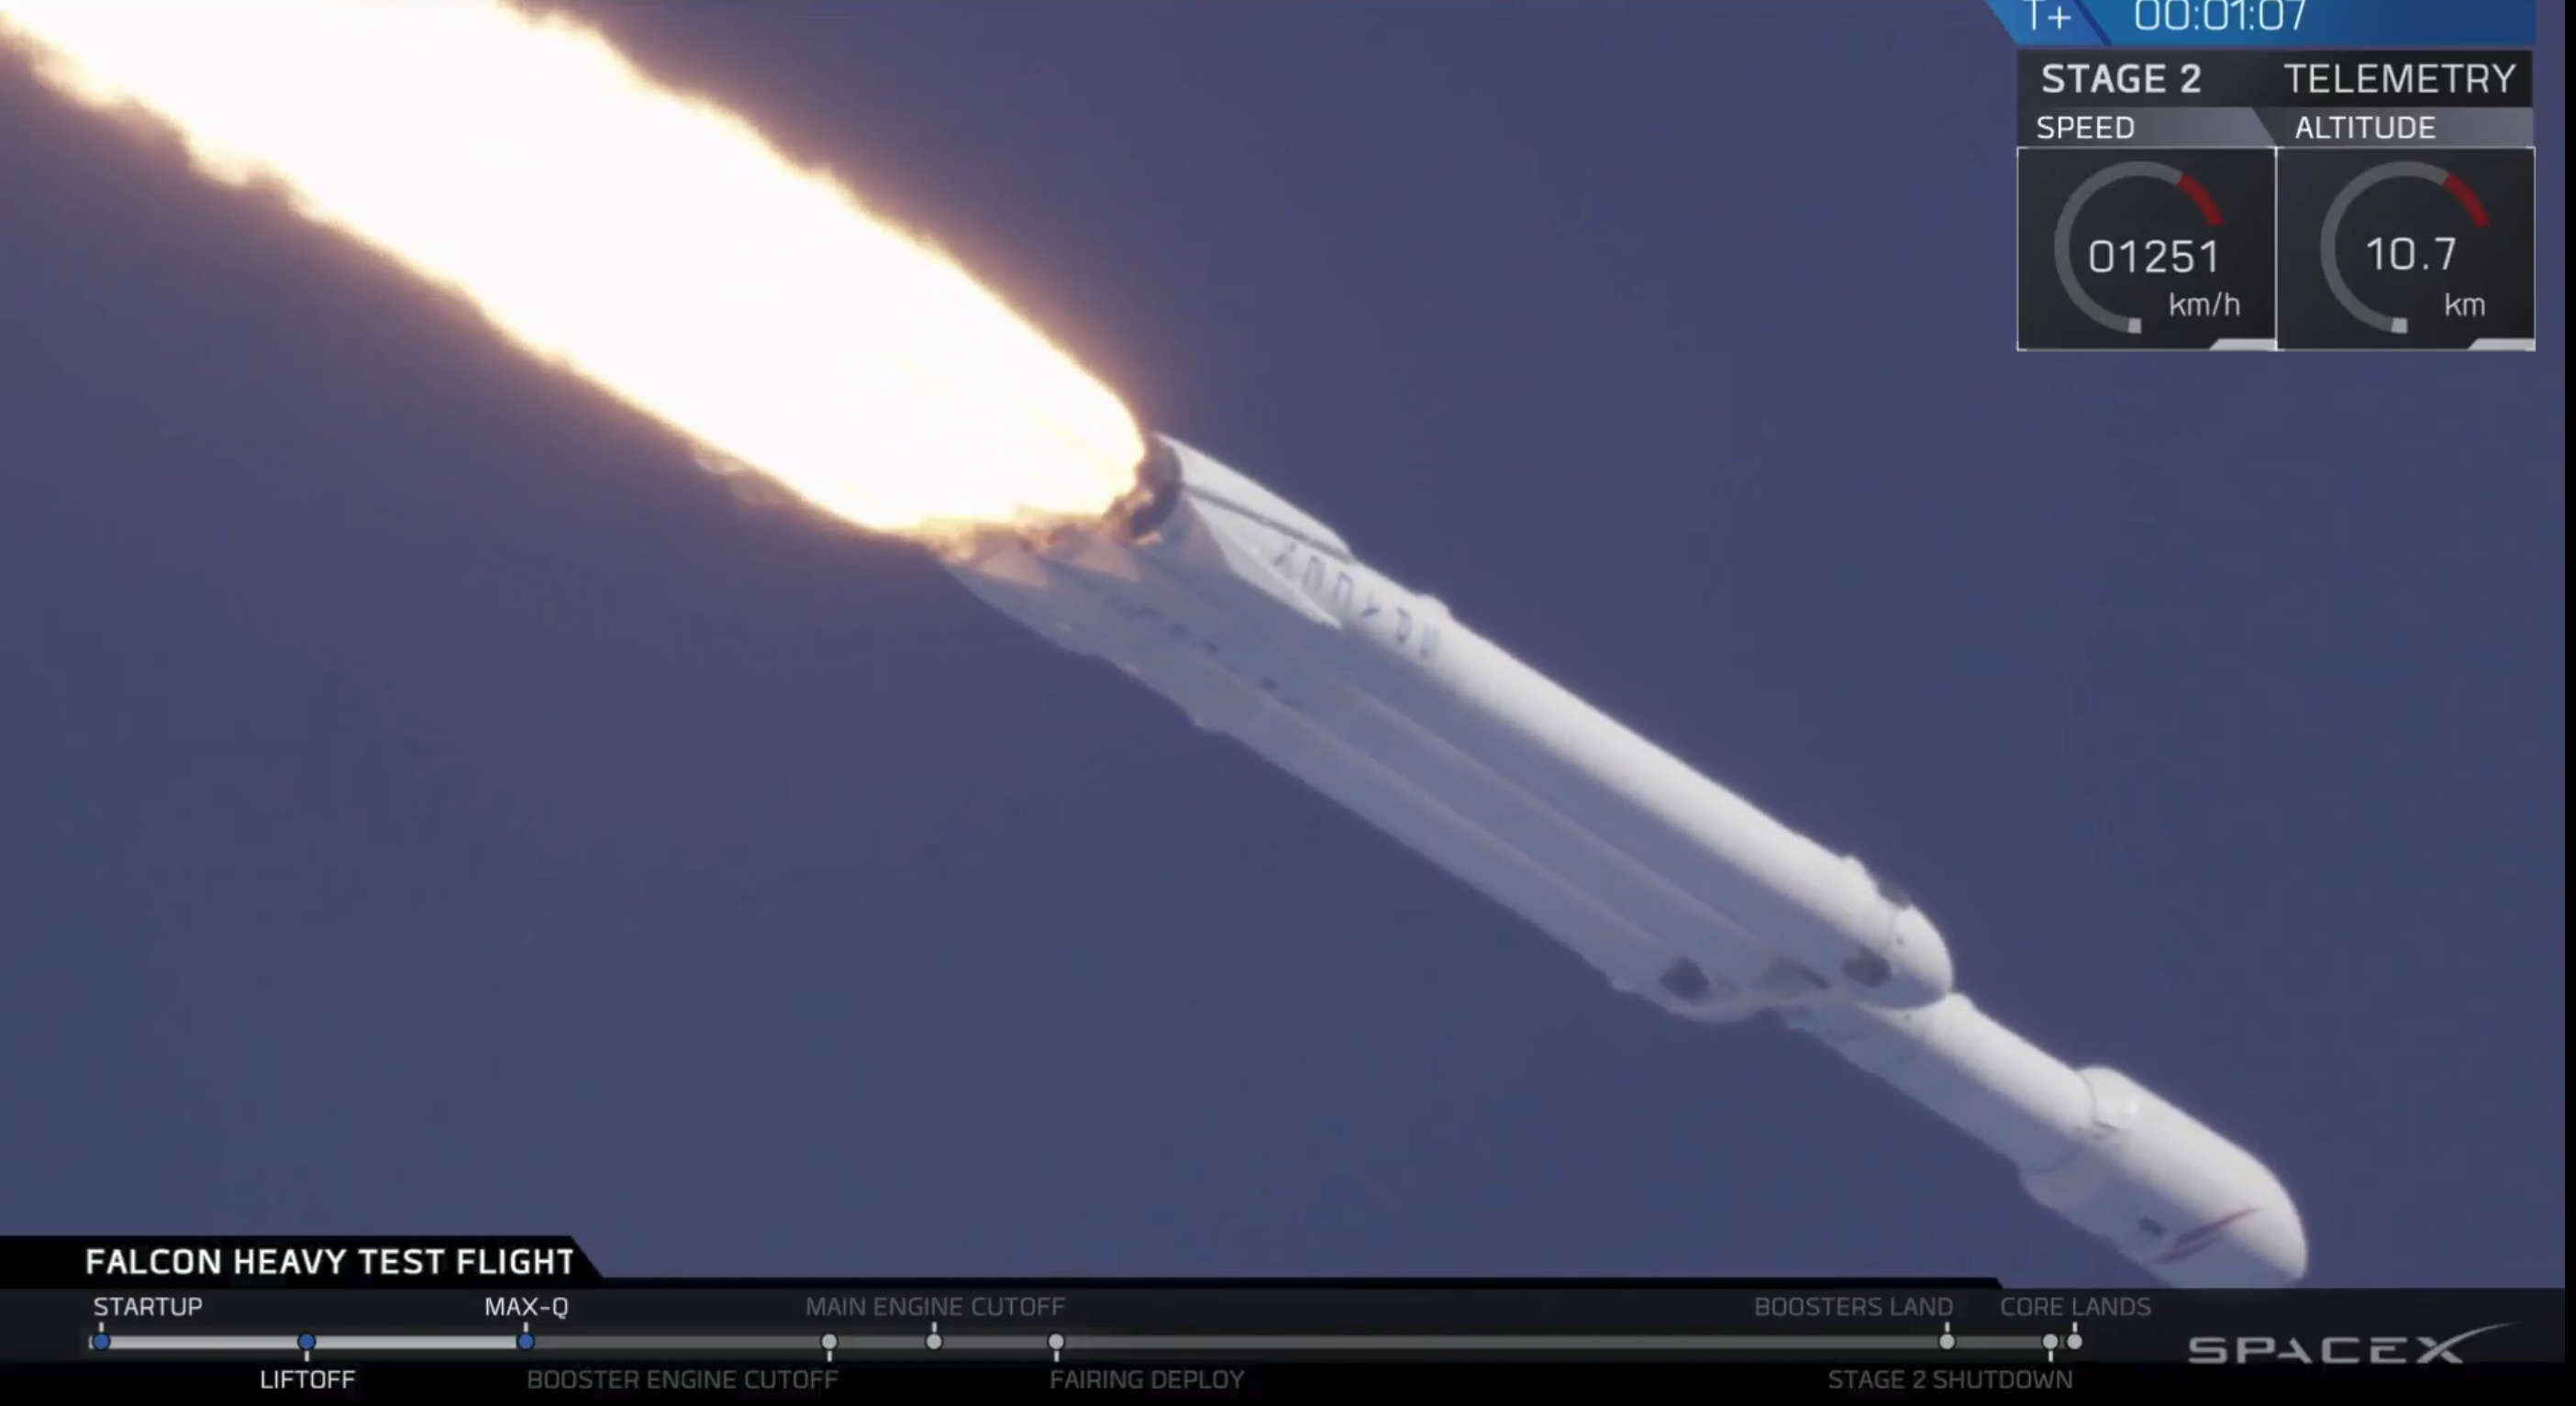 SpaceX Falcon Heavy launch.